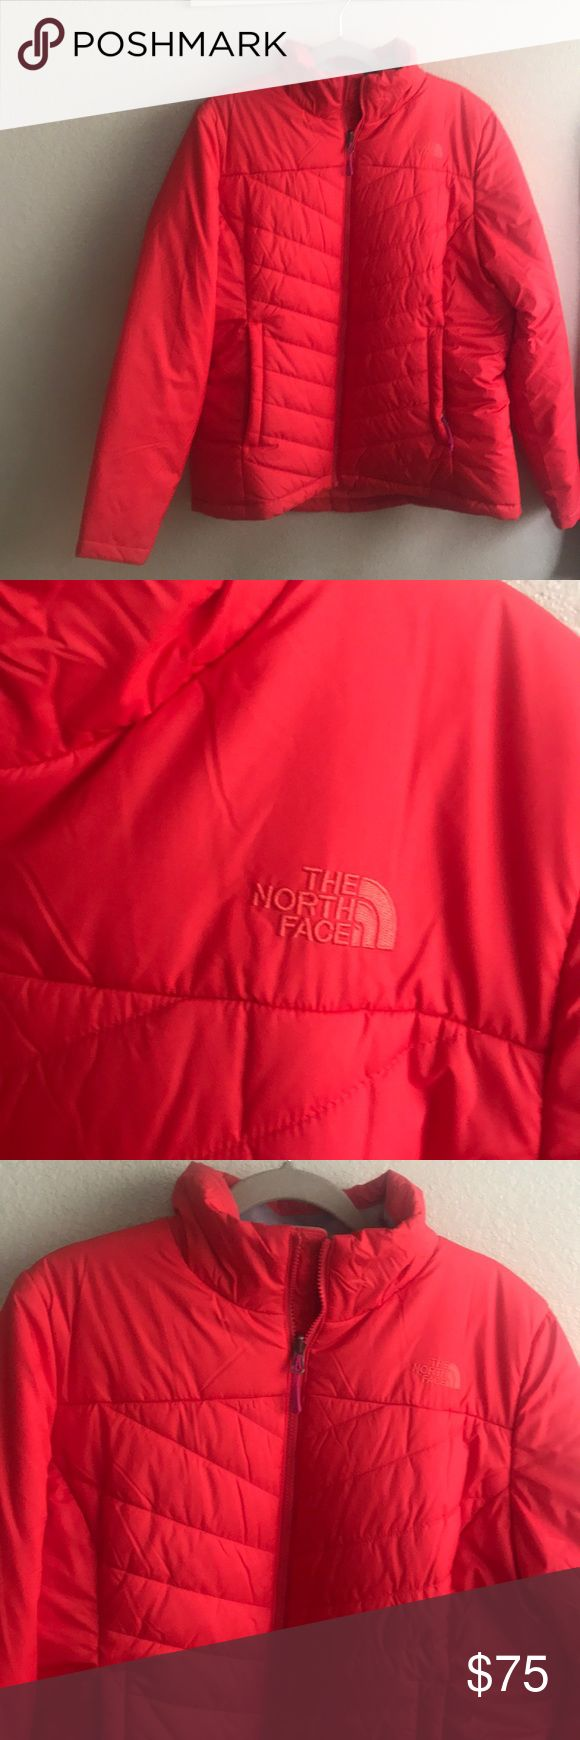 North Face red quilted jacket XL North Face Quilted red XL jacket. Brand new The North Face Jackets & Coats Puffers